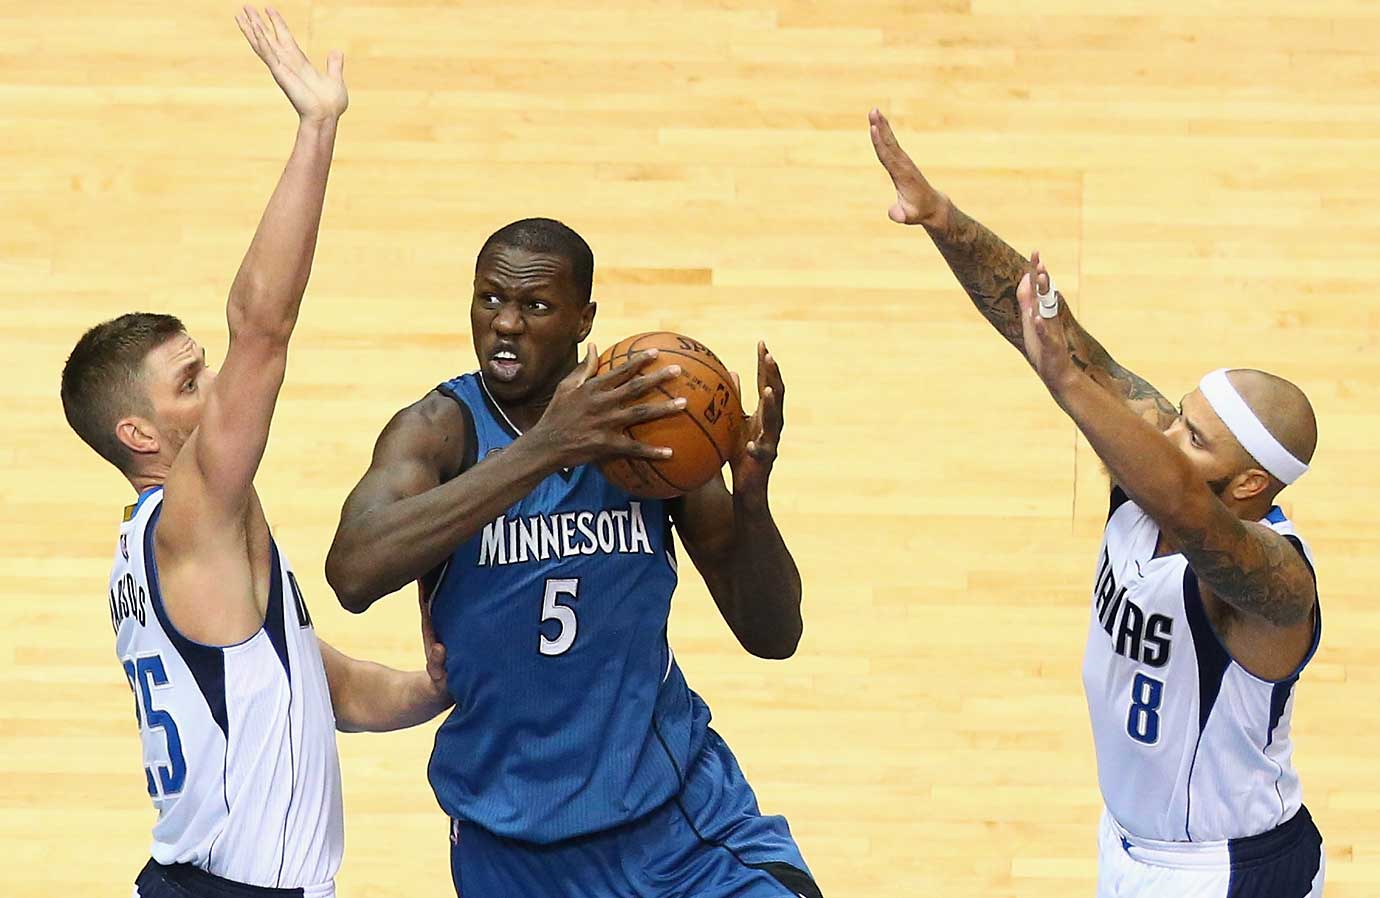 Gorgui Dieng of Minnesota dribbles against Chandler Parsons and Deron Williams of the Dallas Mavericks.